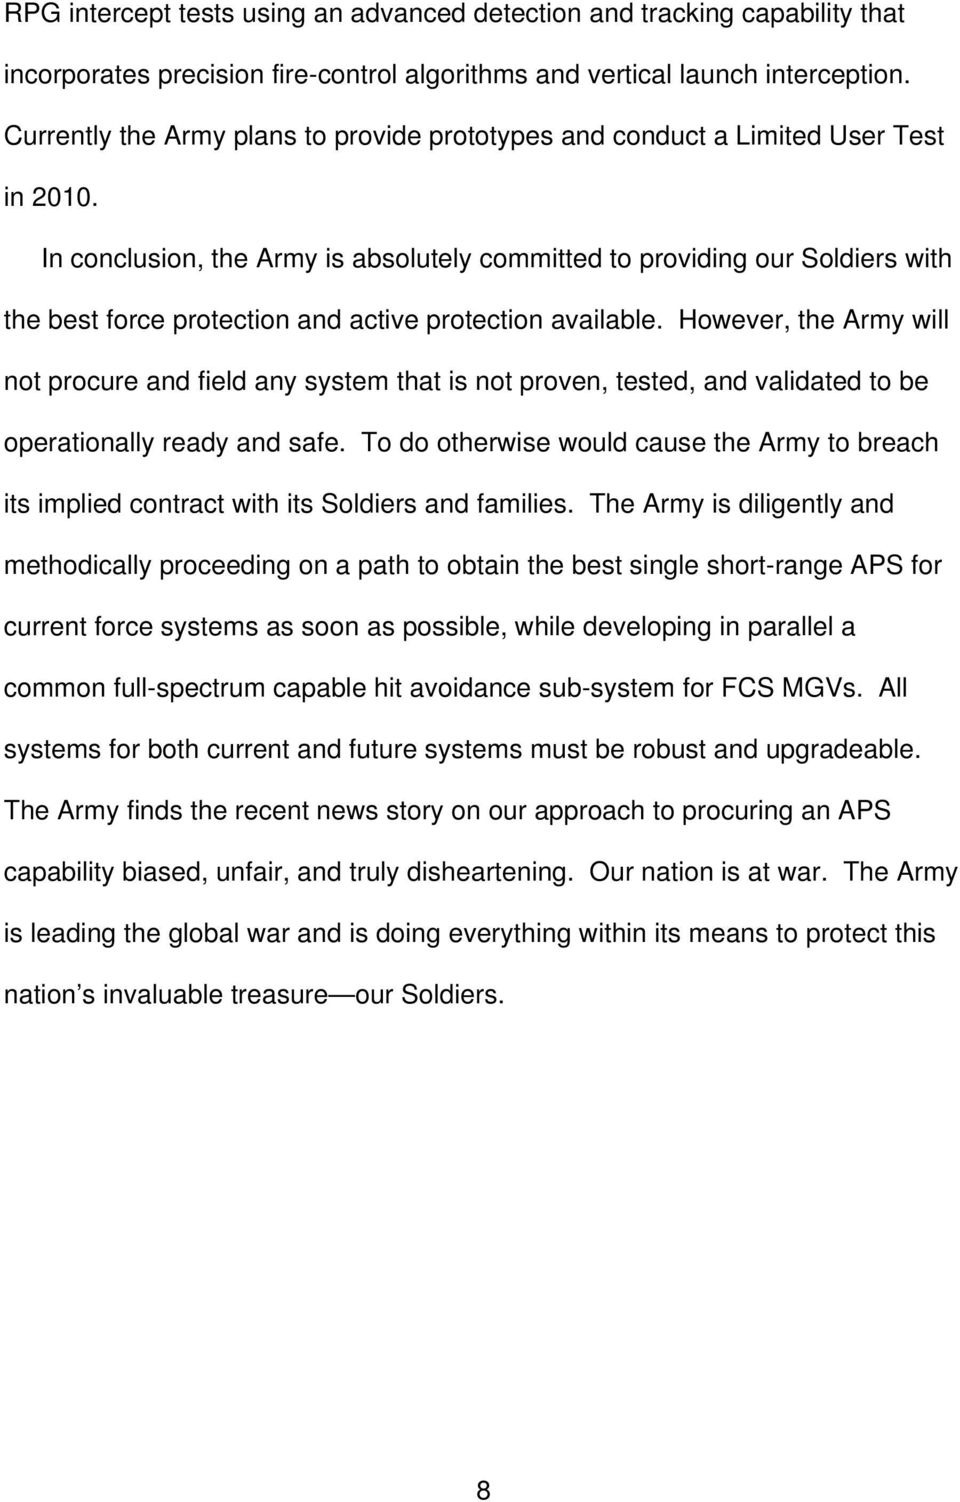 In conclusion, the Army is absolutely committed to providing our Soldiers with the best force protection and active protection available.